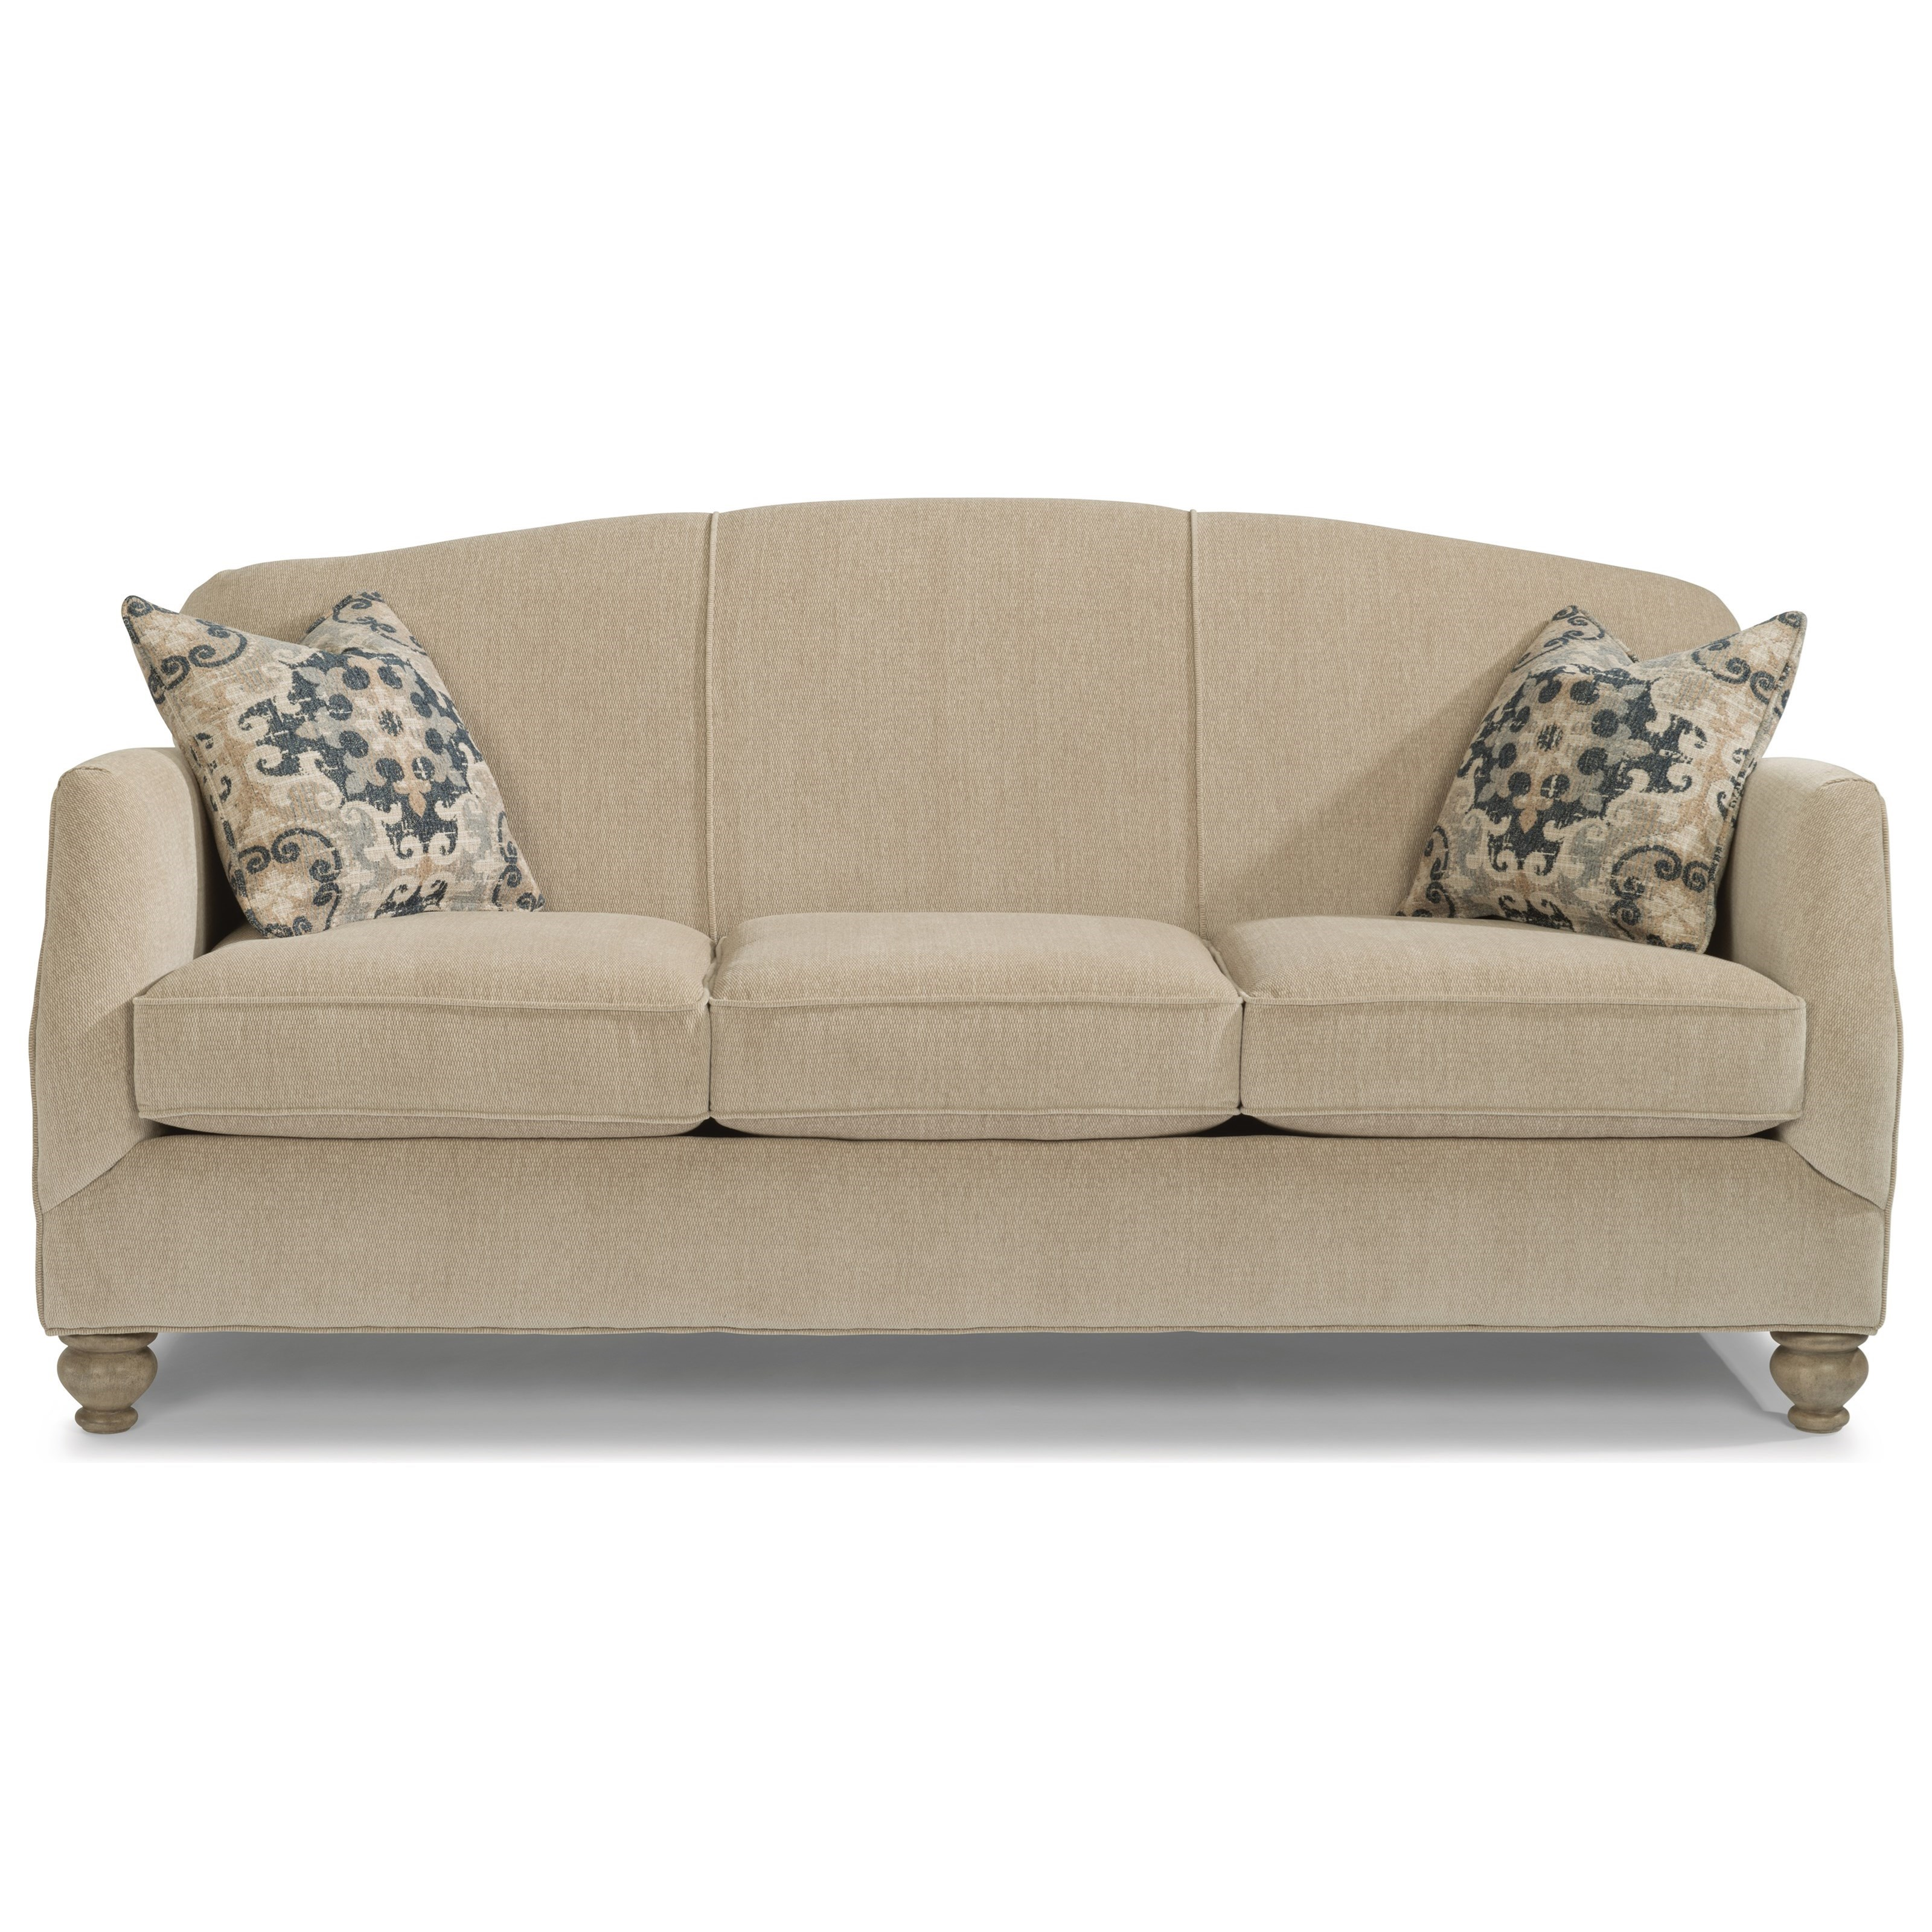 Sofa Arm Covers Dublin Plymouth Transitional Sofa With Bun Feet By Flexsteel At Rooms For Less